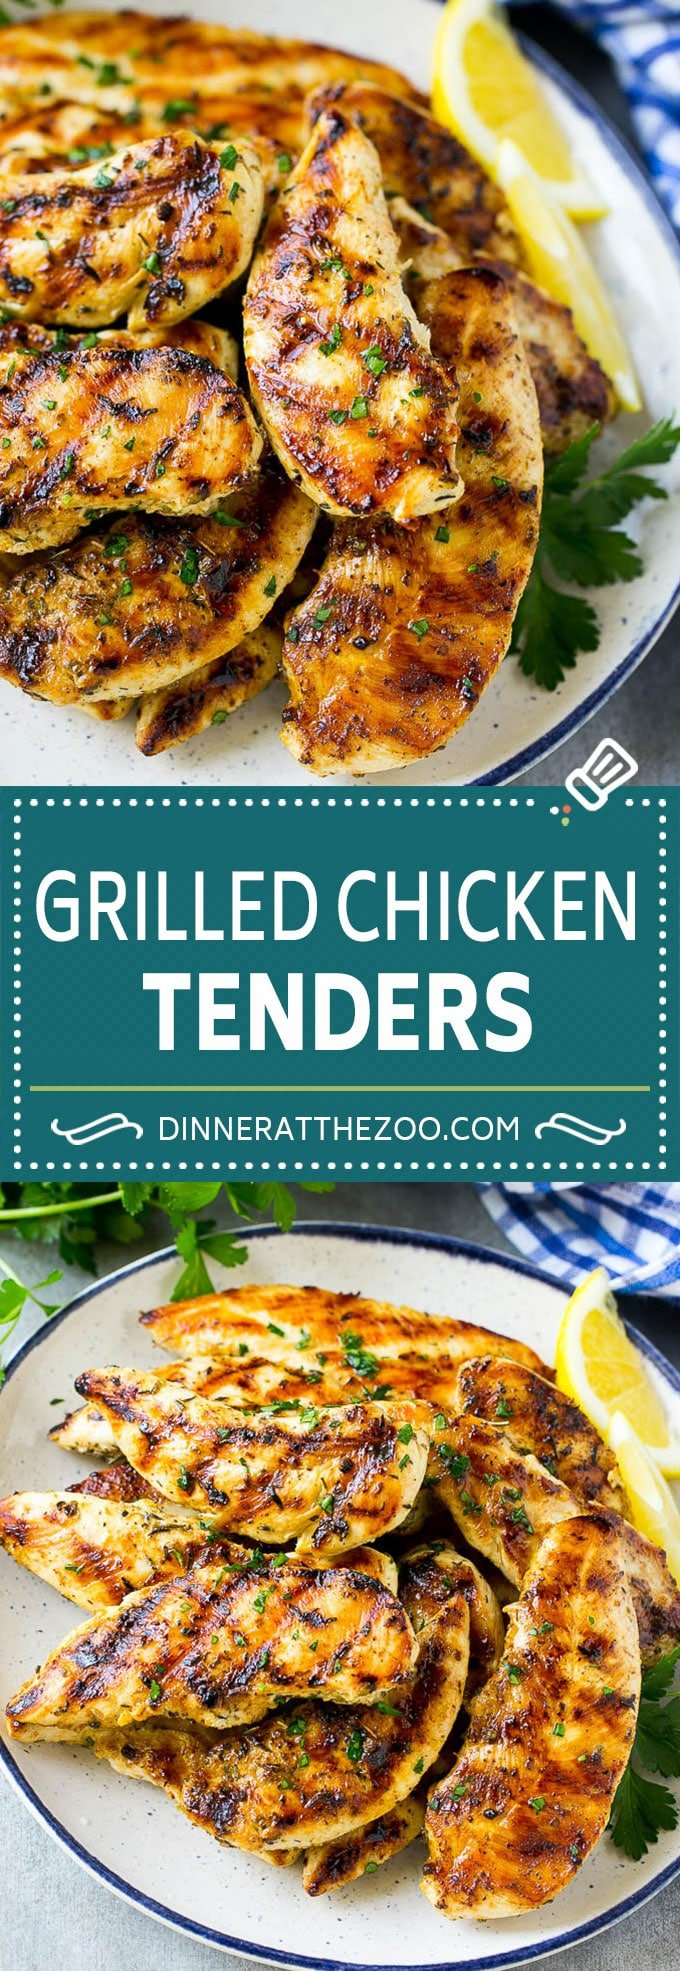 Grilled Chicken Tenders Recipe | Marinated Chicken | Lemon Garlic Chicken | Grilled Chicken #grilling #chicken #healthy #dinneratthezoo